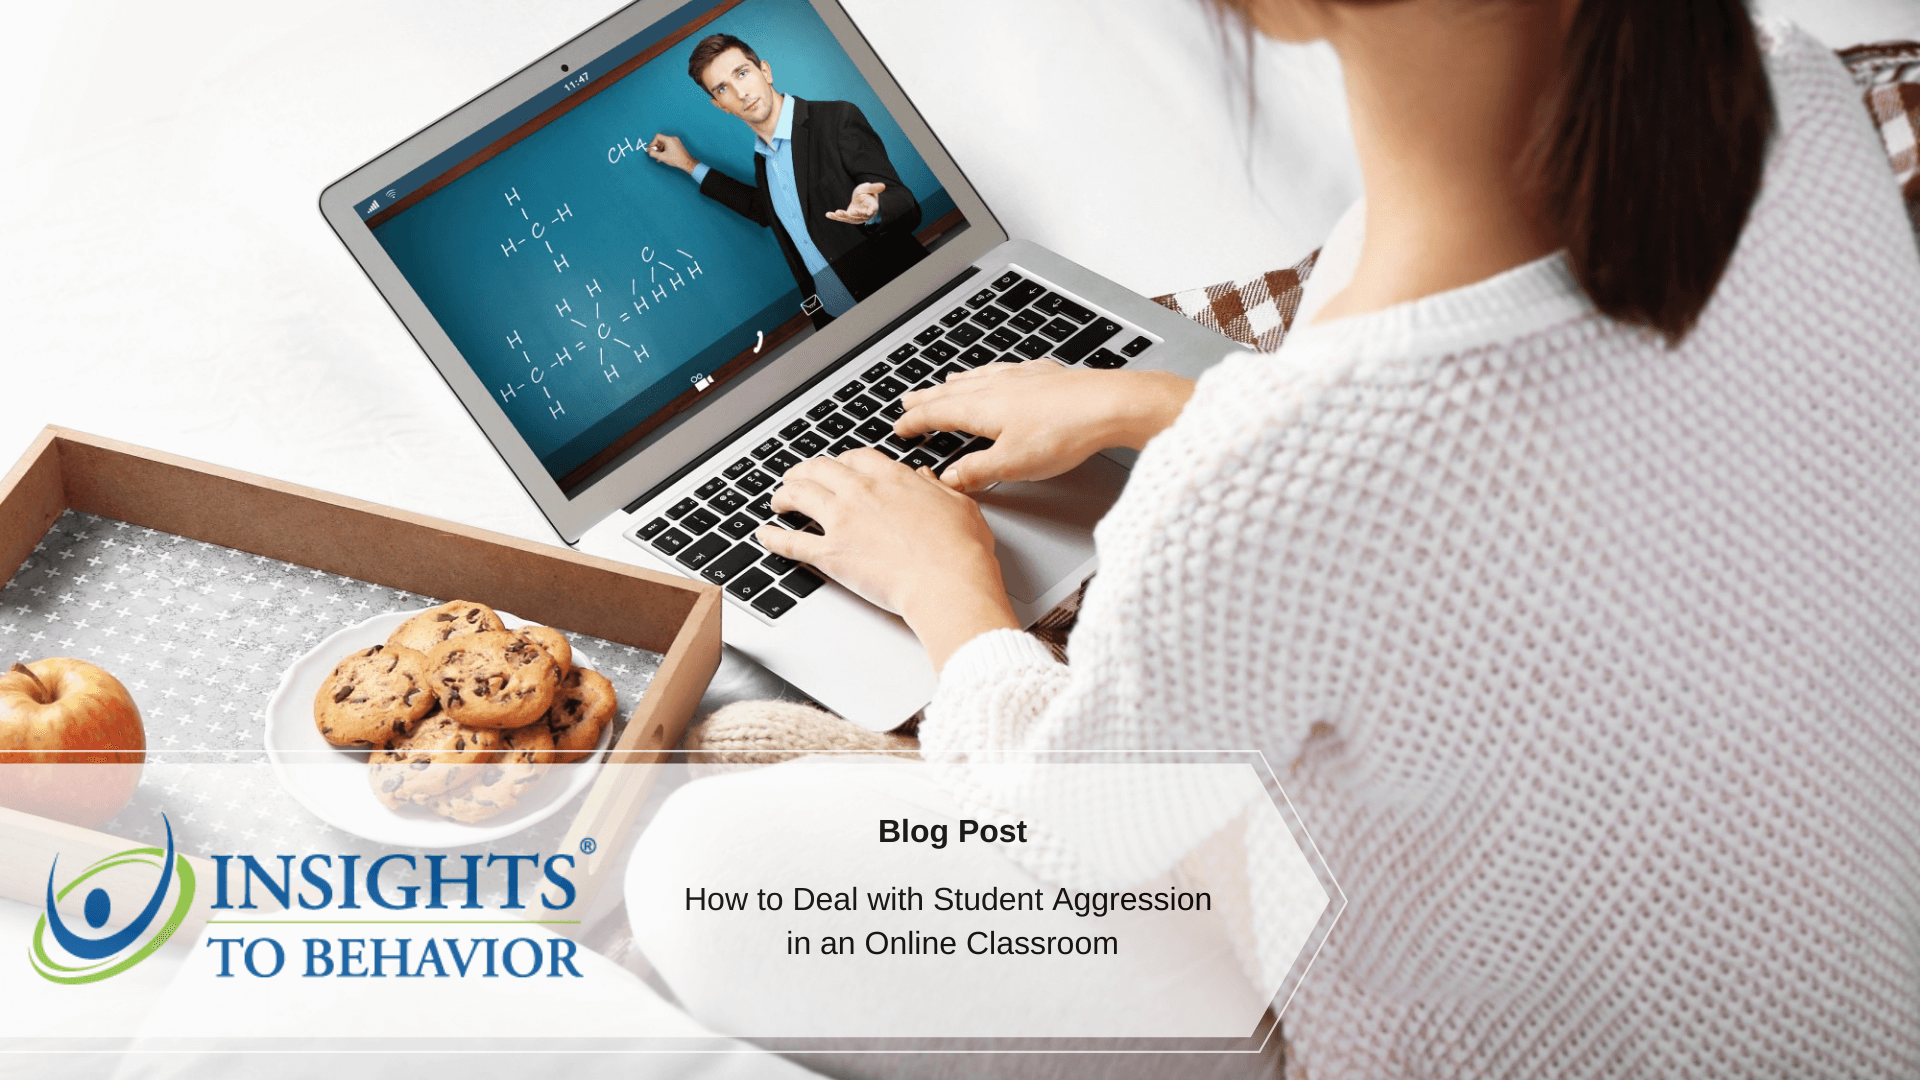 How to Deal with Student Aggression in an Online Classroom